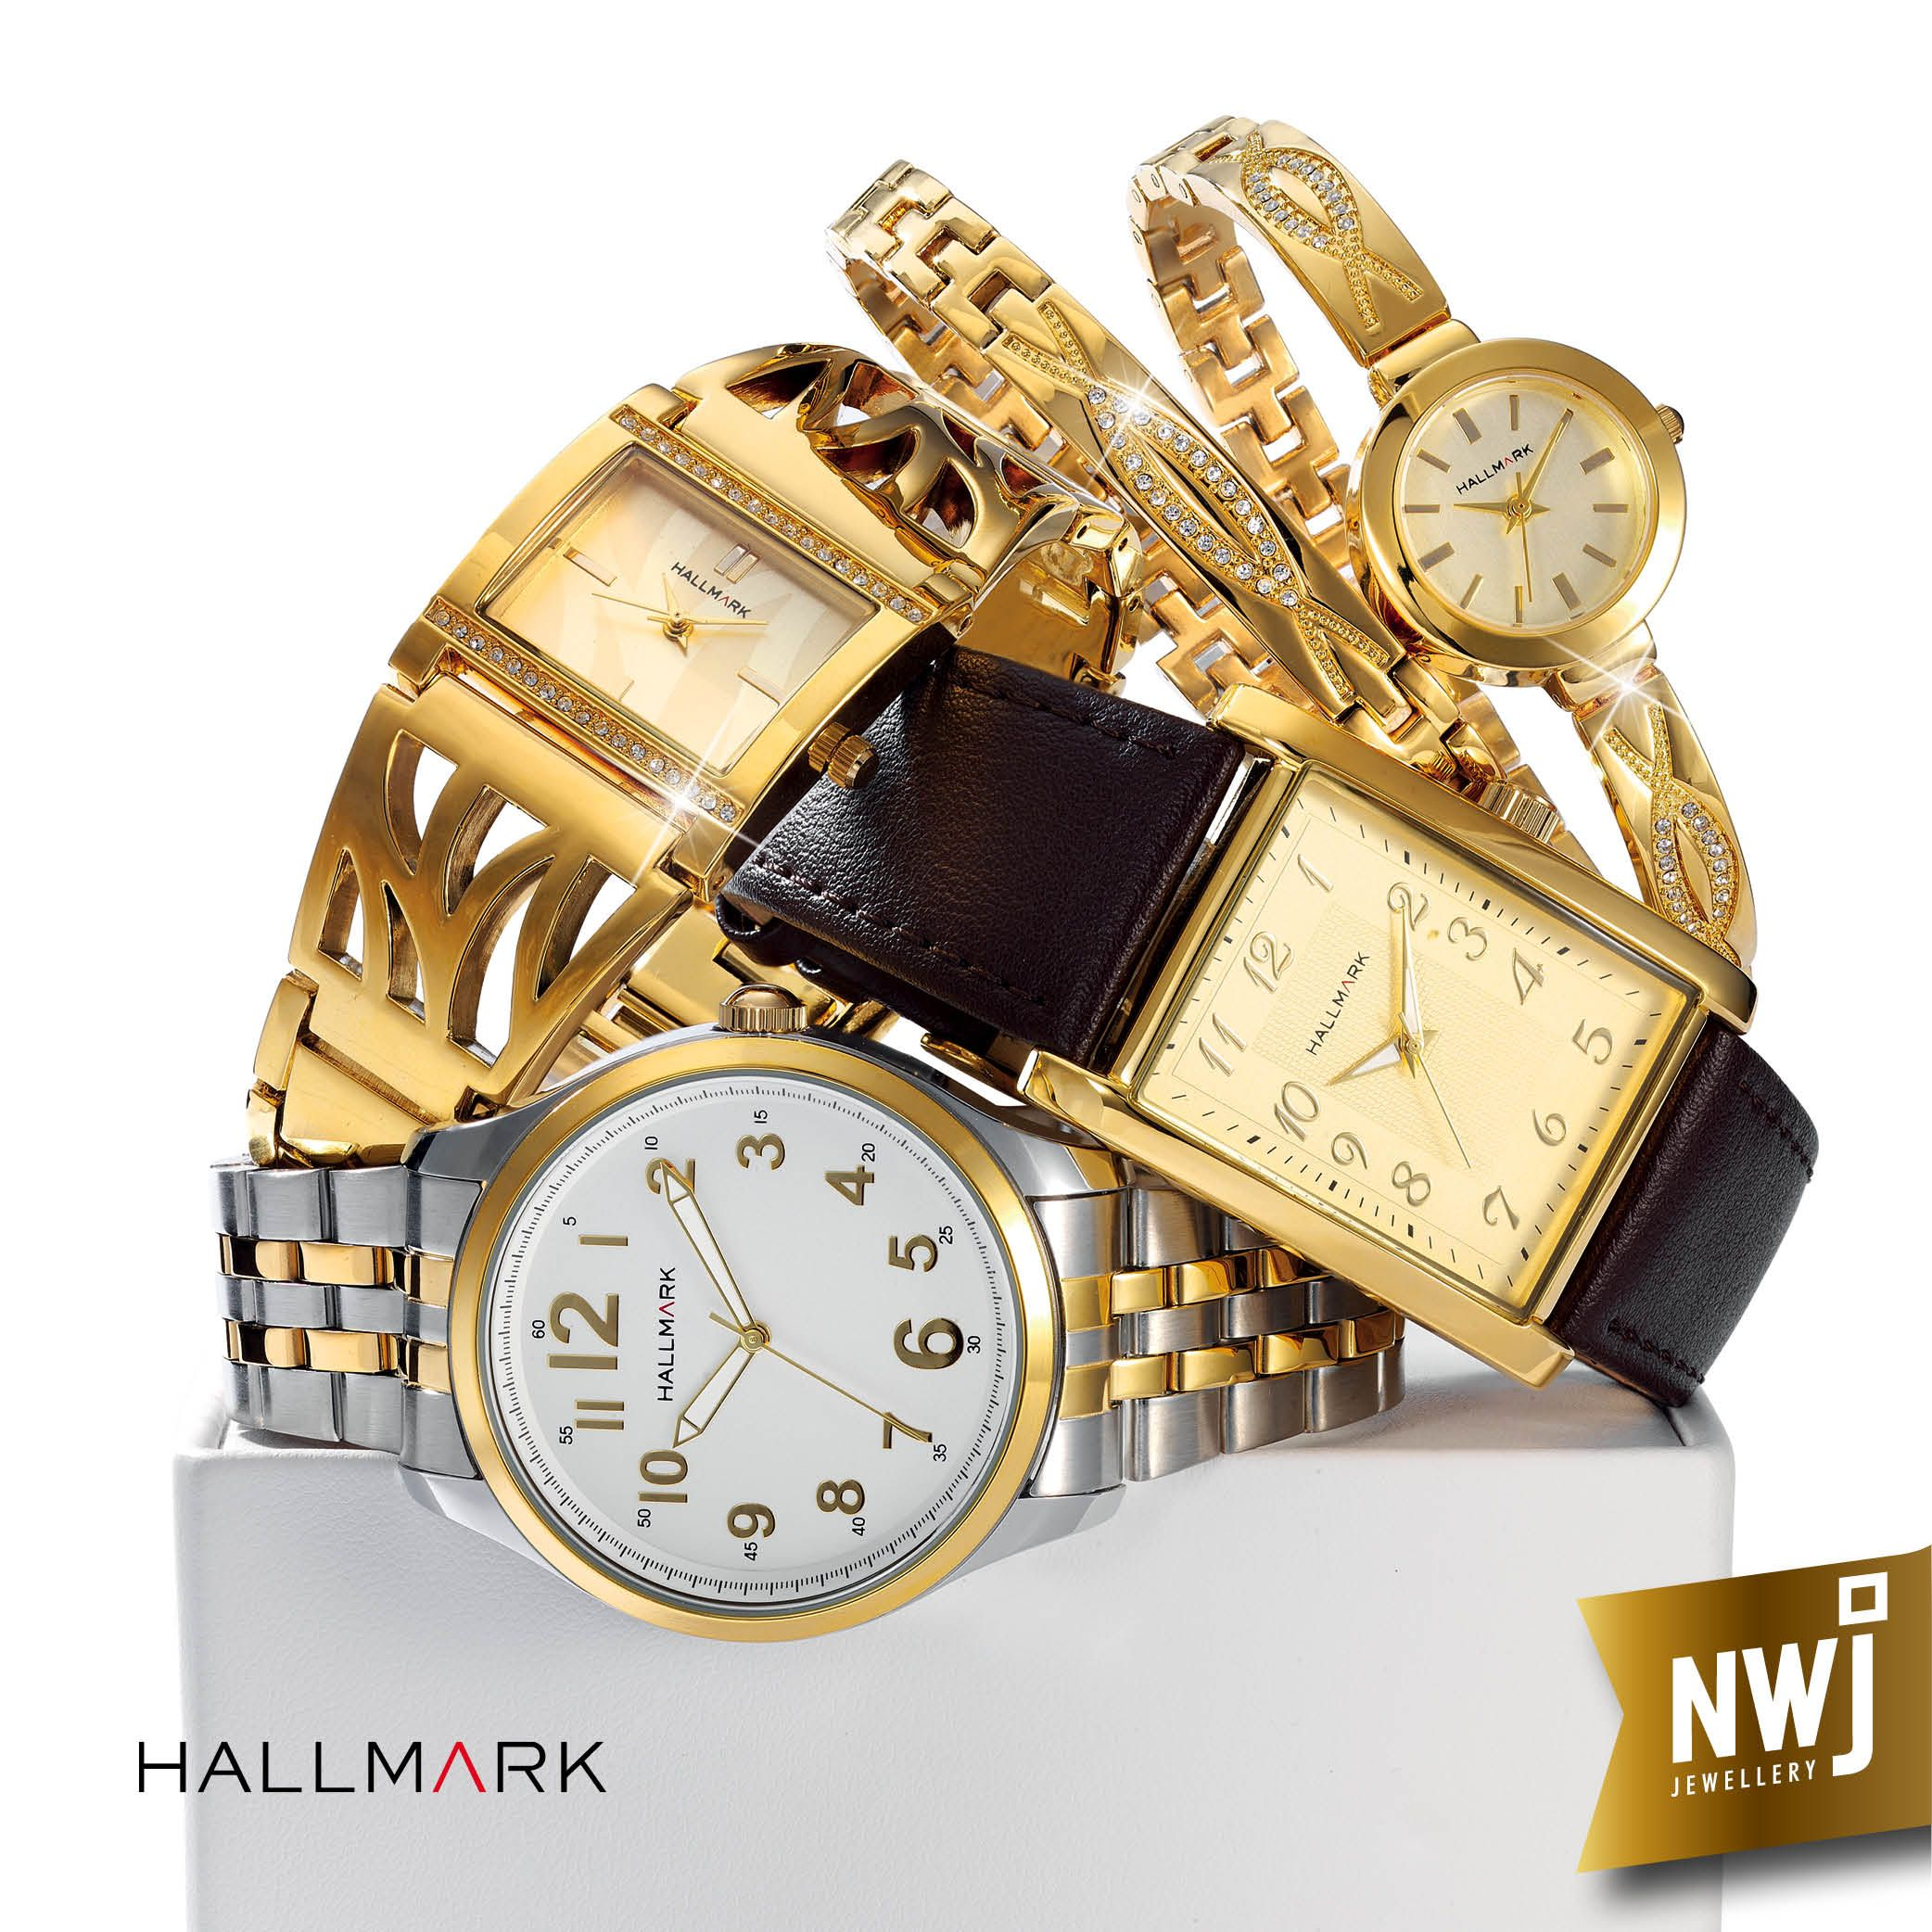 watches college s have student and beautifully hallmark nwj crafted timeless elegance pin are